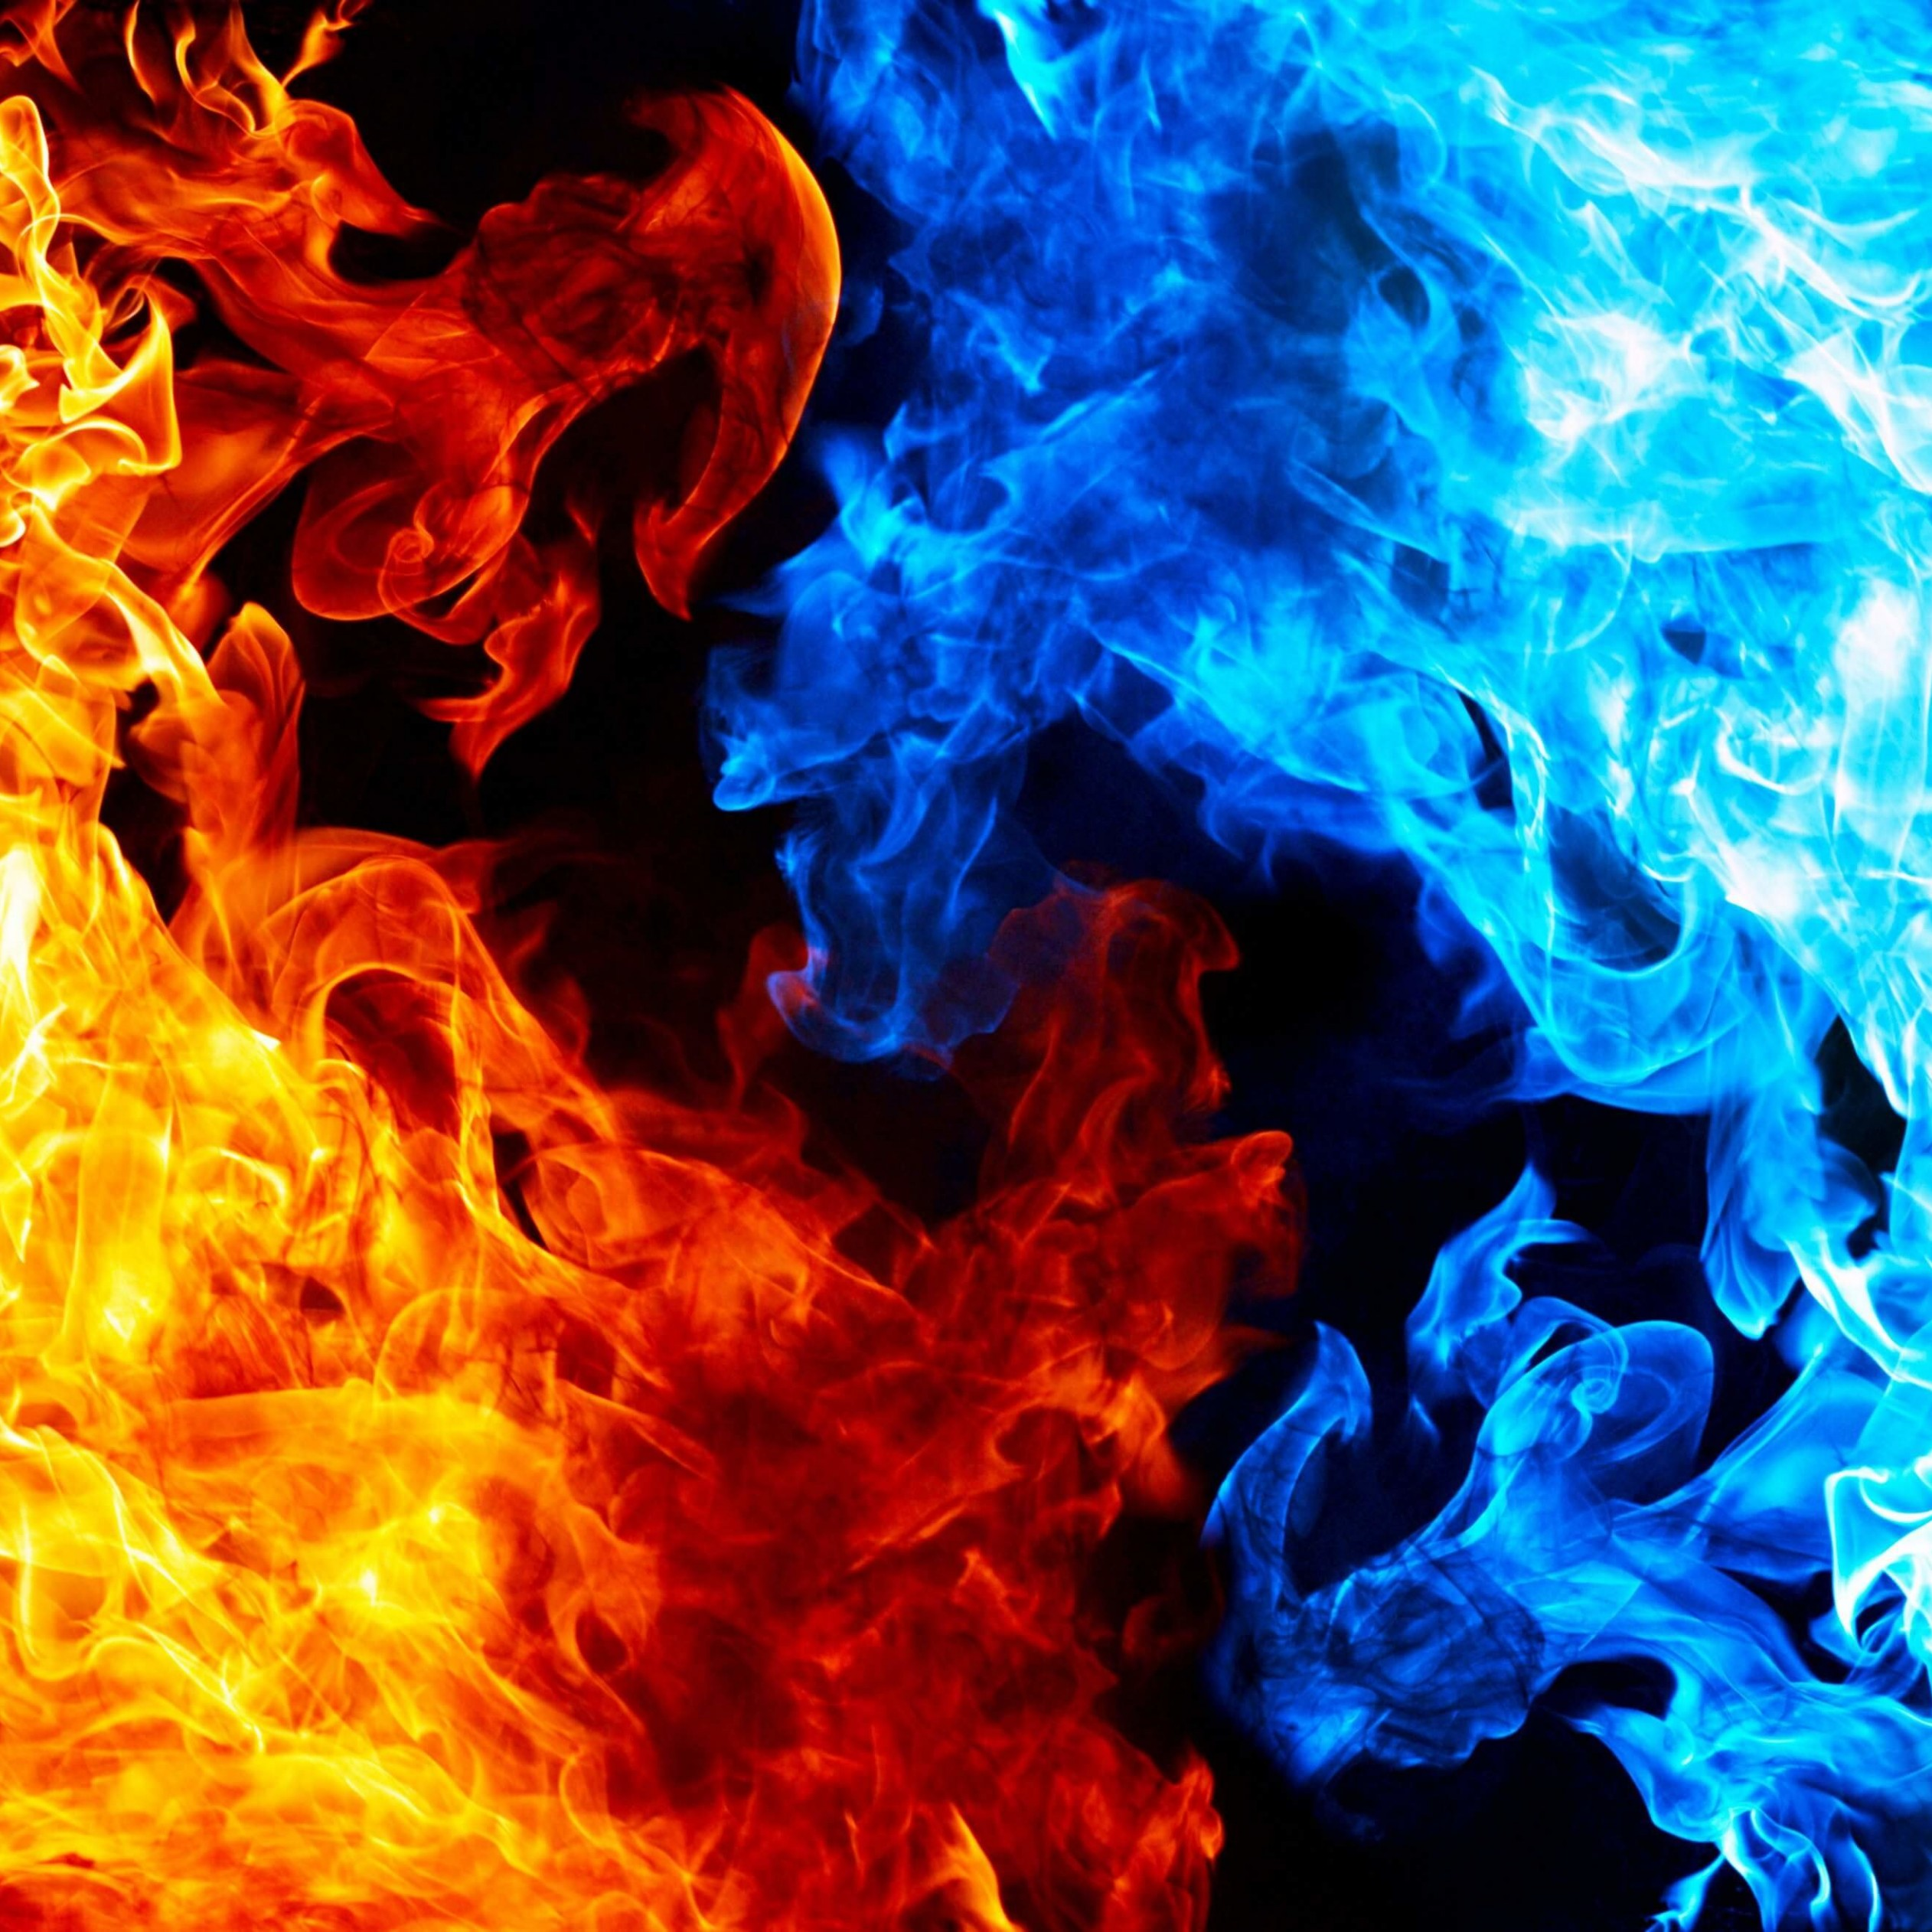 Blue And Red Fire Wallpaper for Apple iPad Air